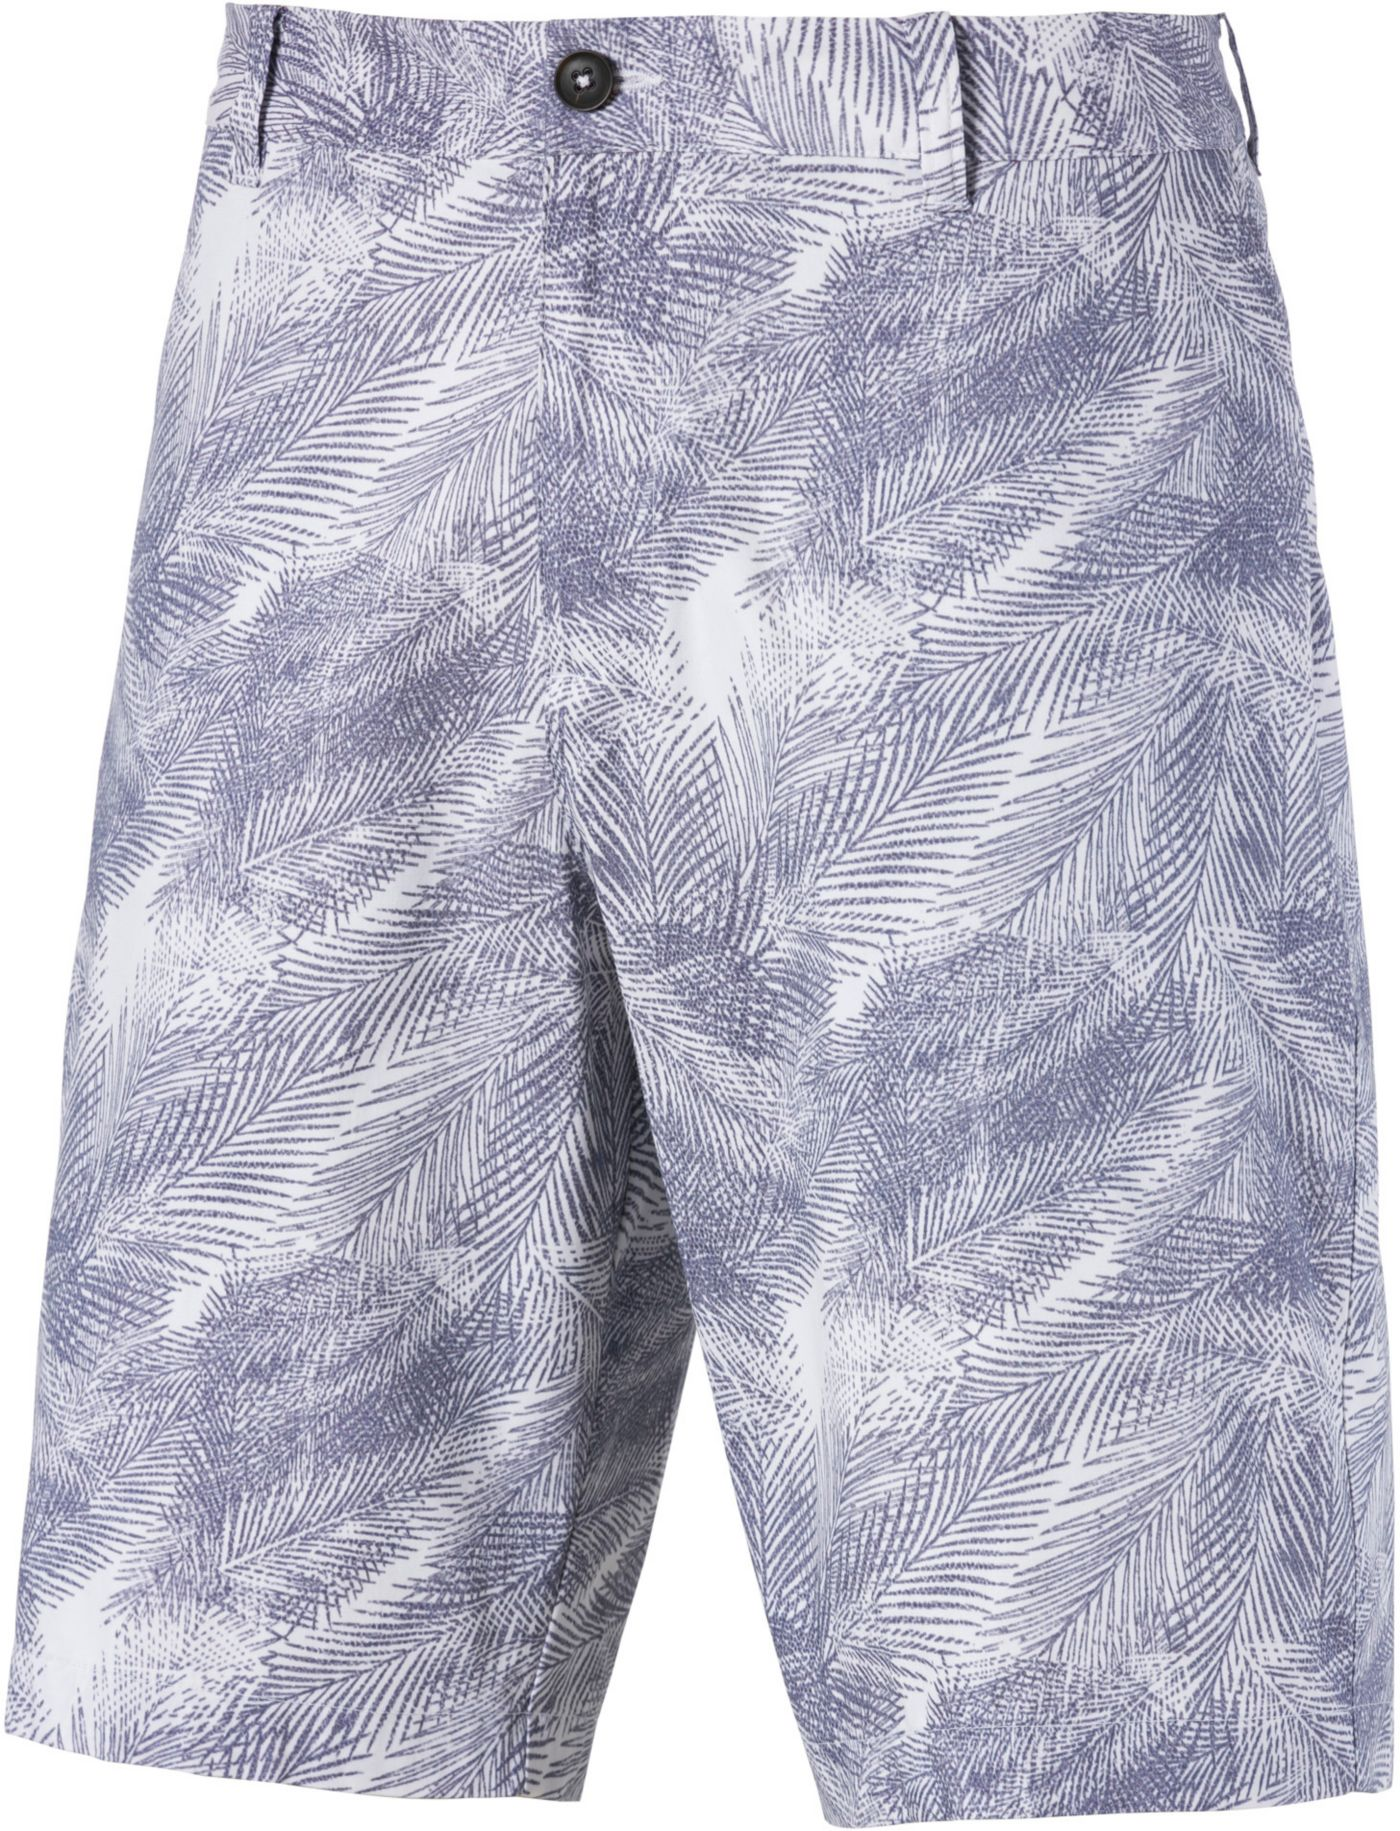 PUMA Men's Palms Golf Shorts